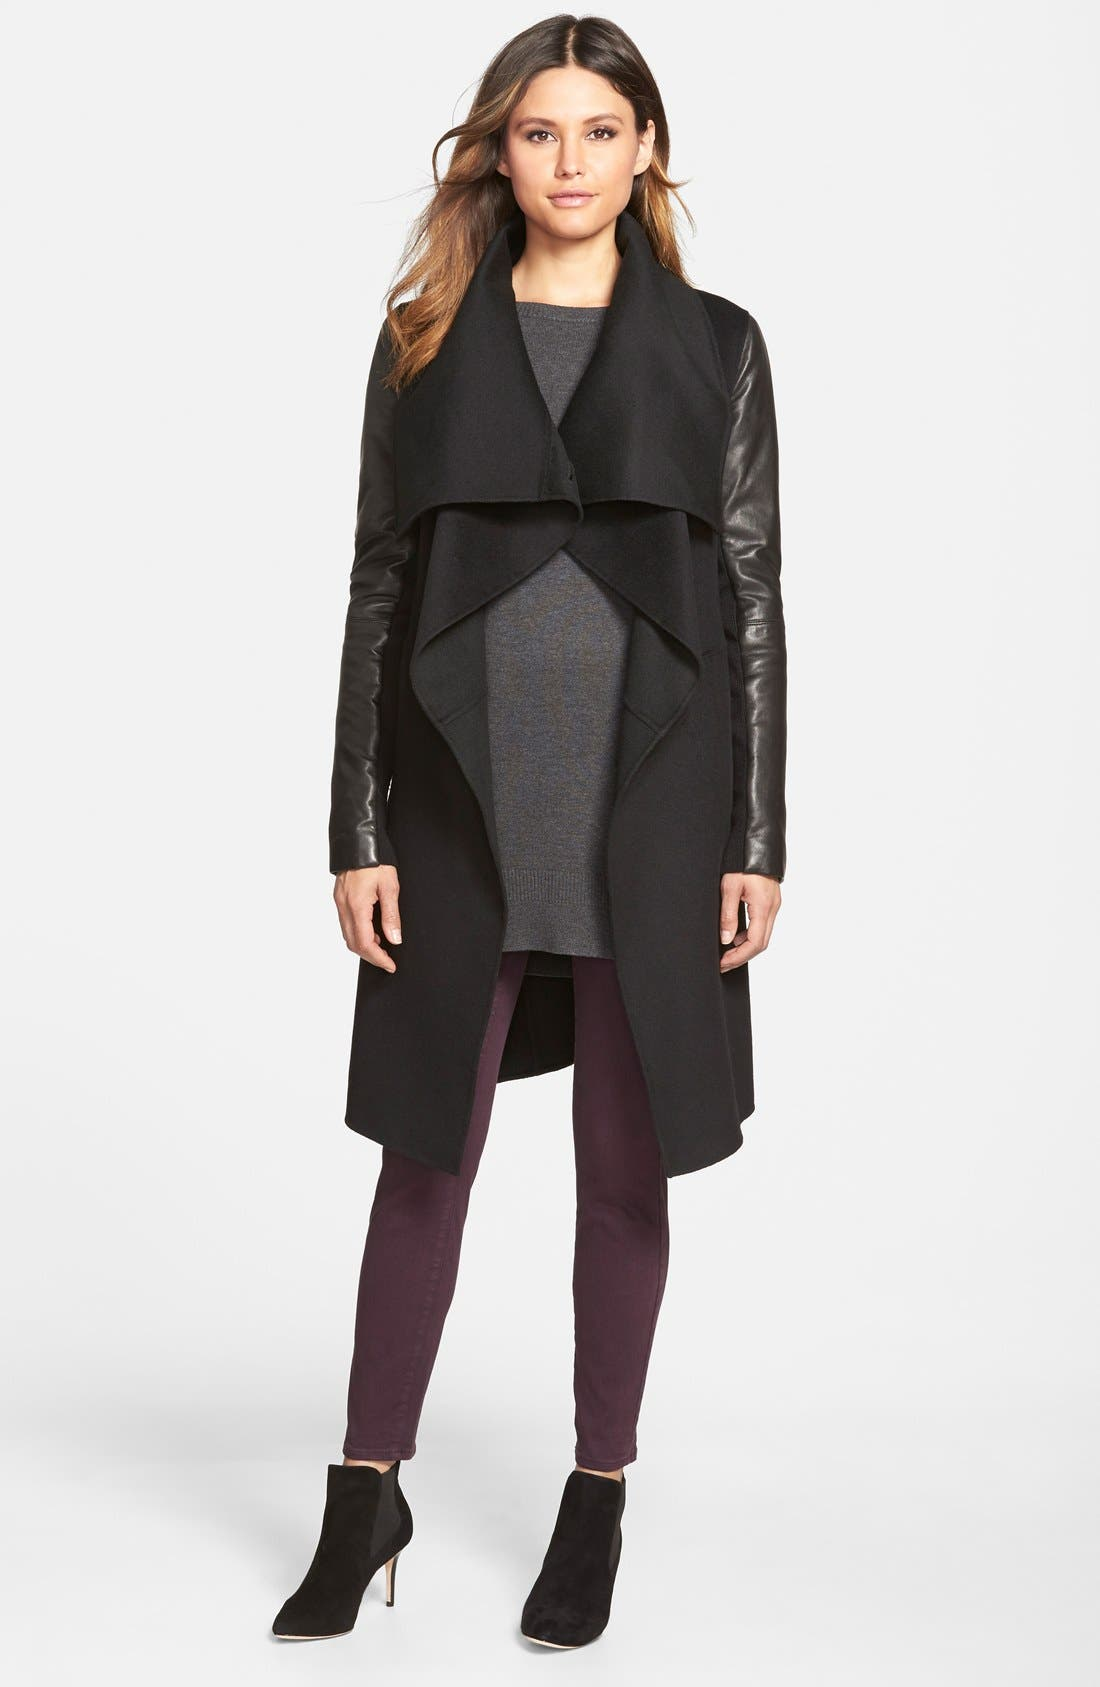 Mackage Wool Blend Coat with Leather Sleeves   Nordstrom